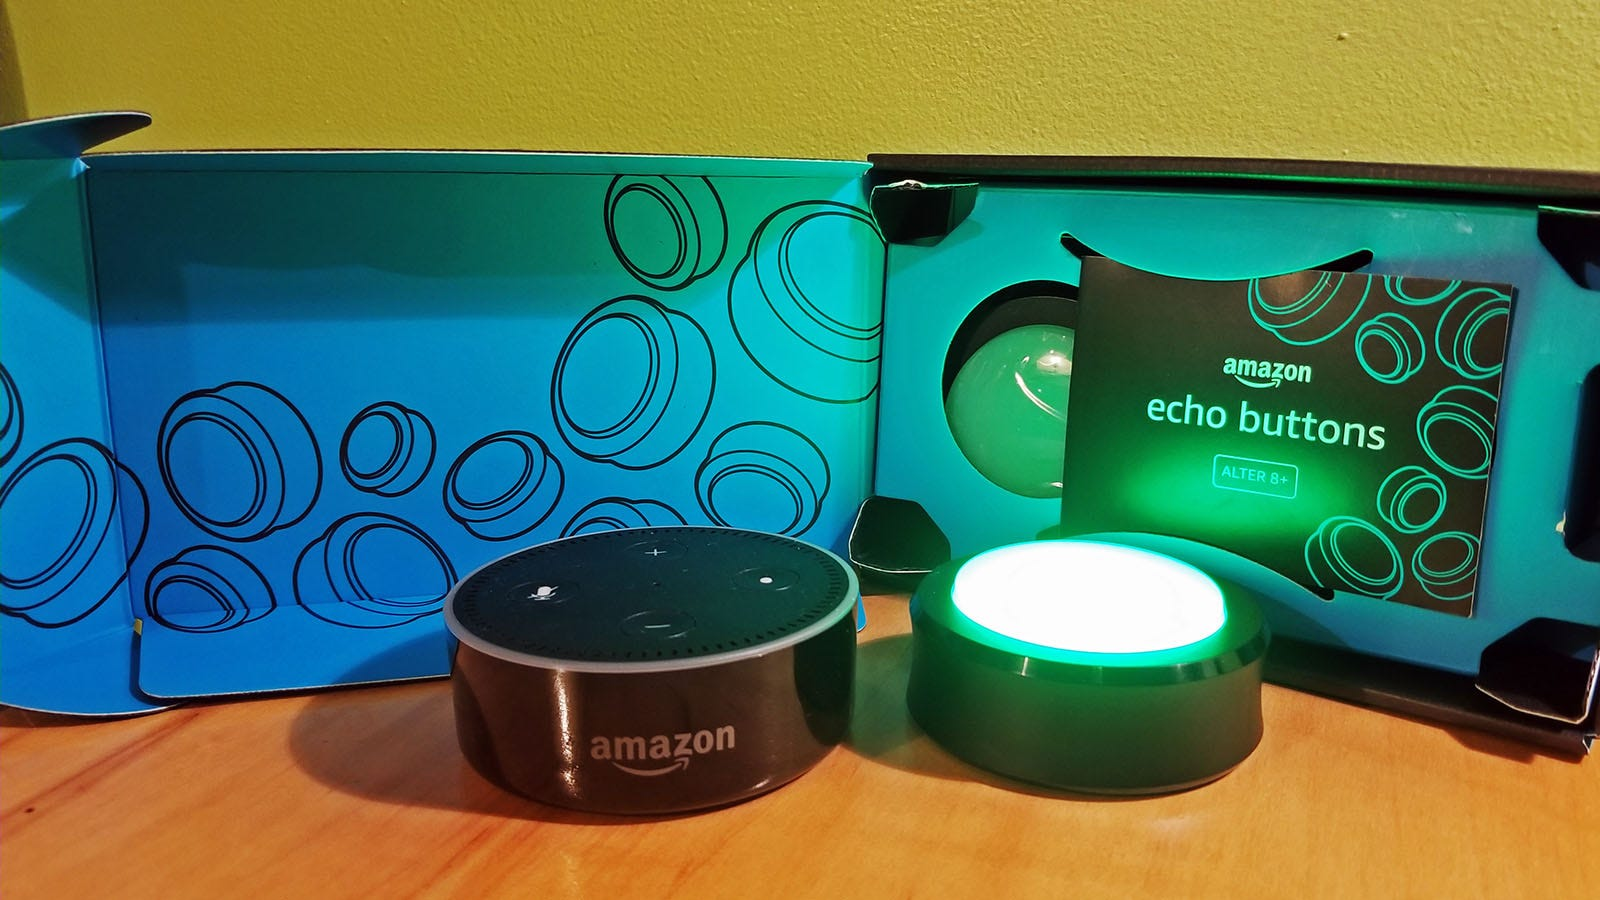 An Amazon Echo and a glowing green Echo button in front of their boxes.